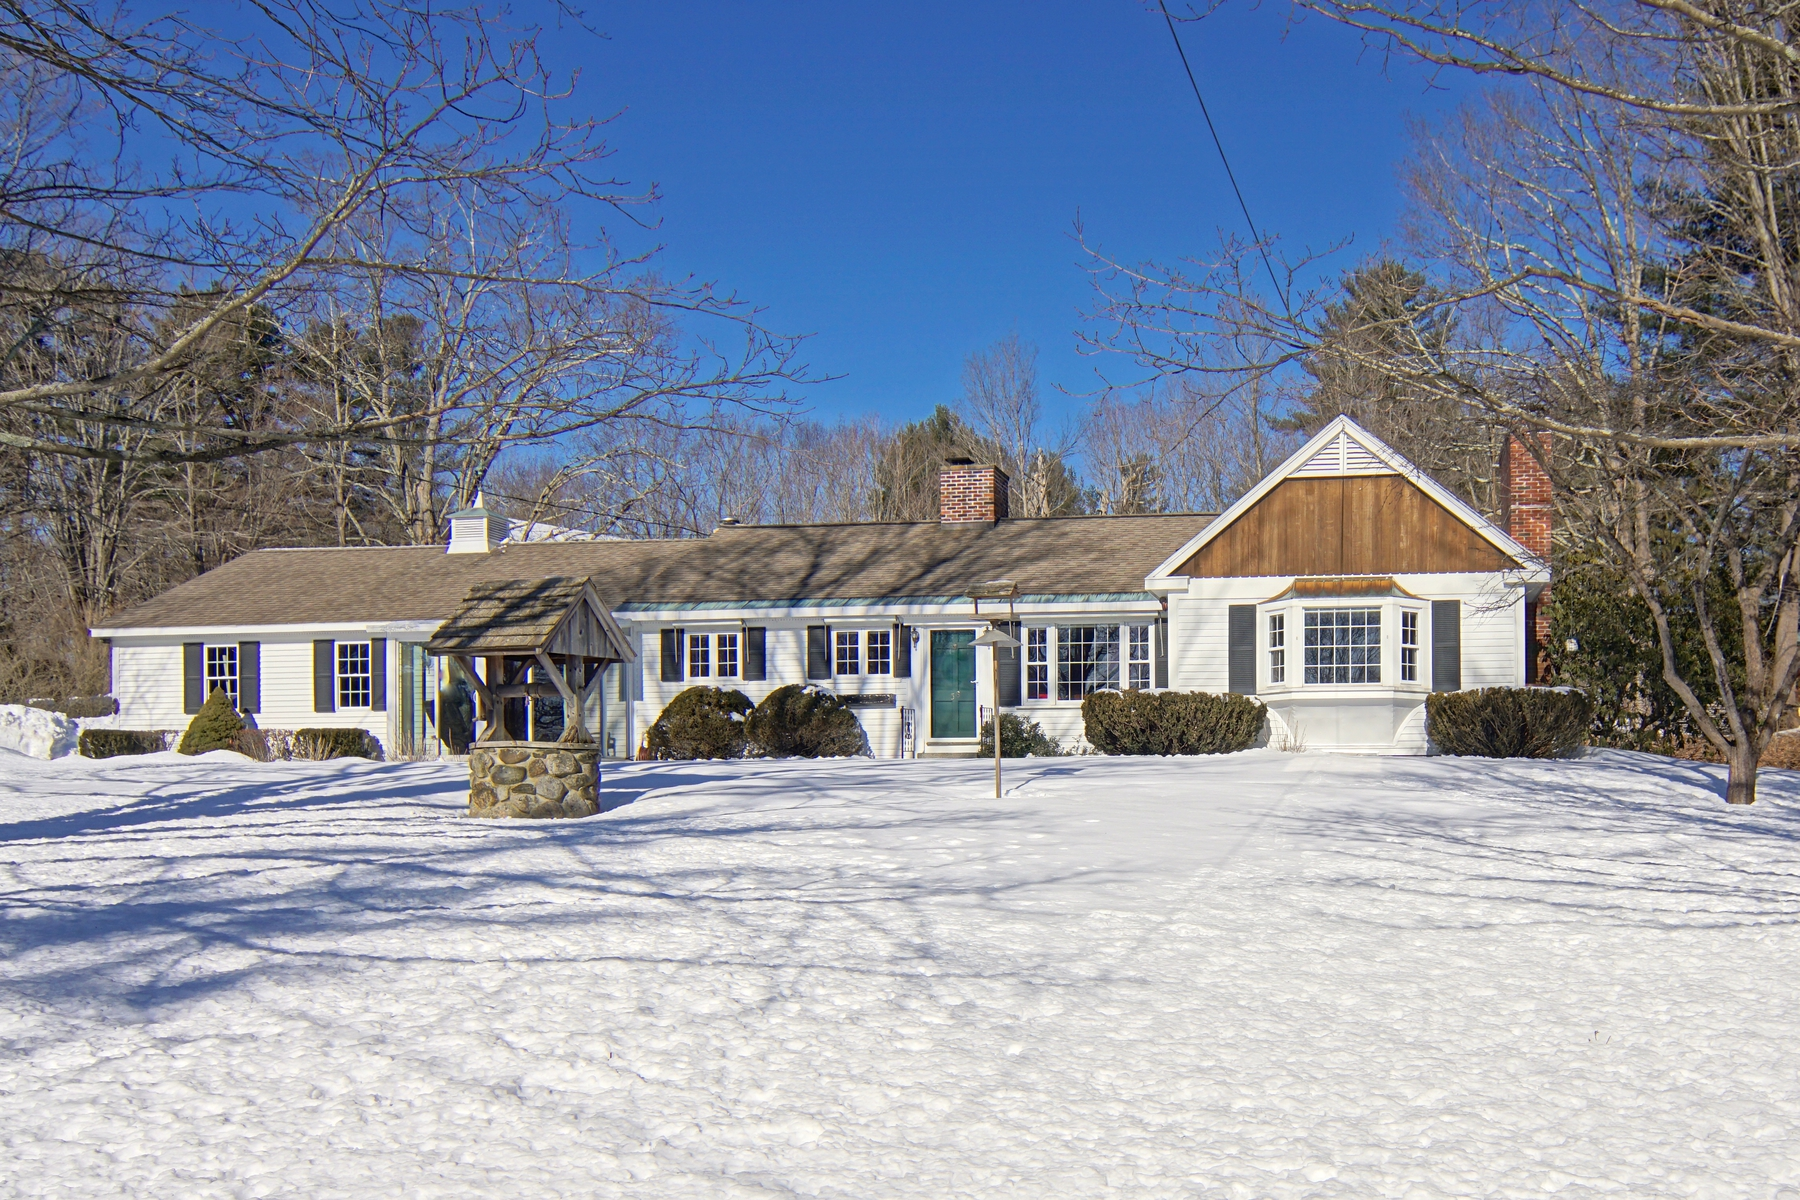 Single Family Home for Sale at Enjoy Country Living Lifestyle on Historic Main Street in Newfields 58 Main Street Newfields, New Hampshire 03856 United States